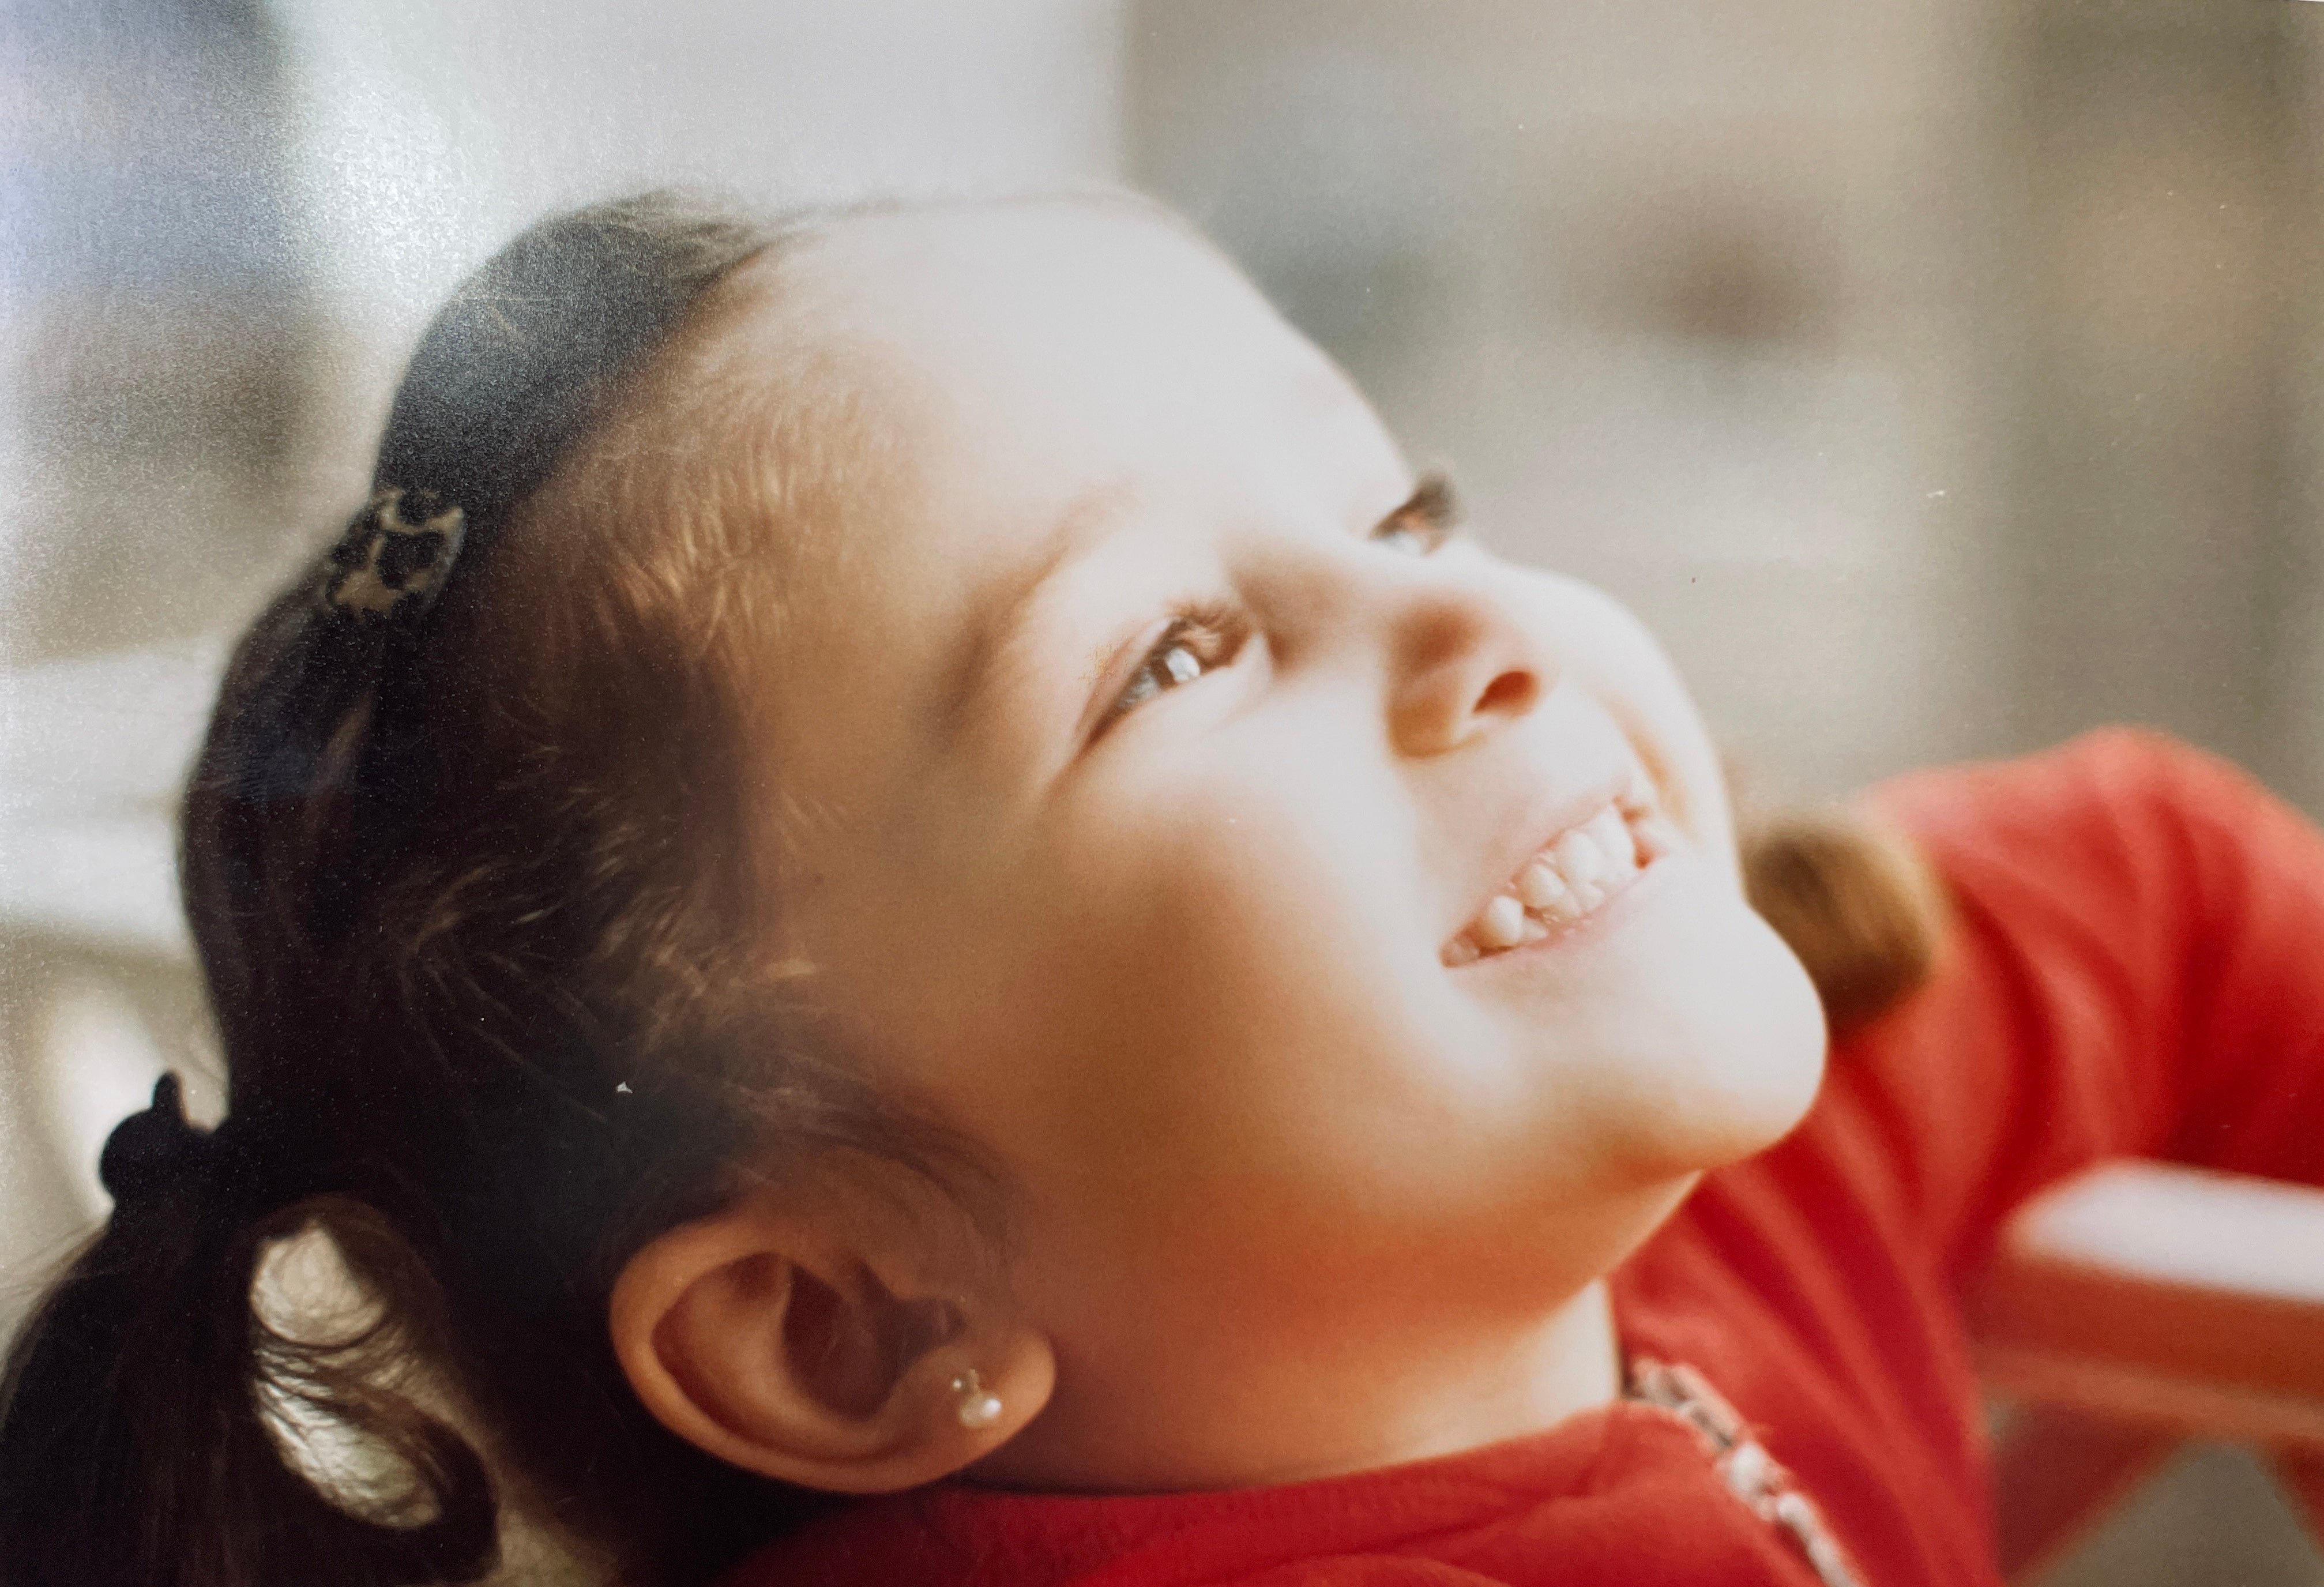 Ghenwa, Nugget Product Designer, as a young child, grinning and looking up to someone off camera